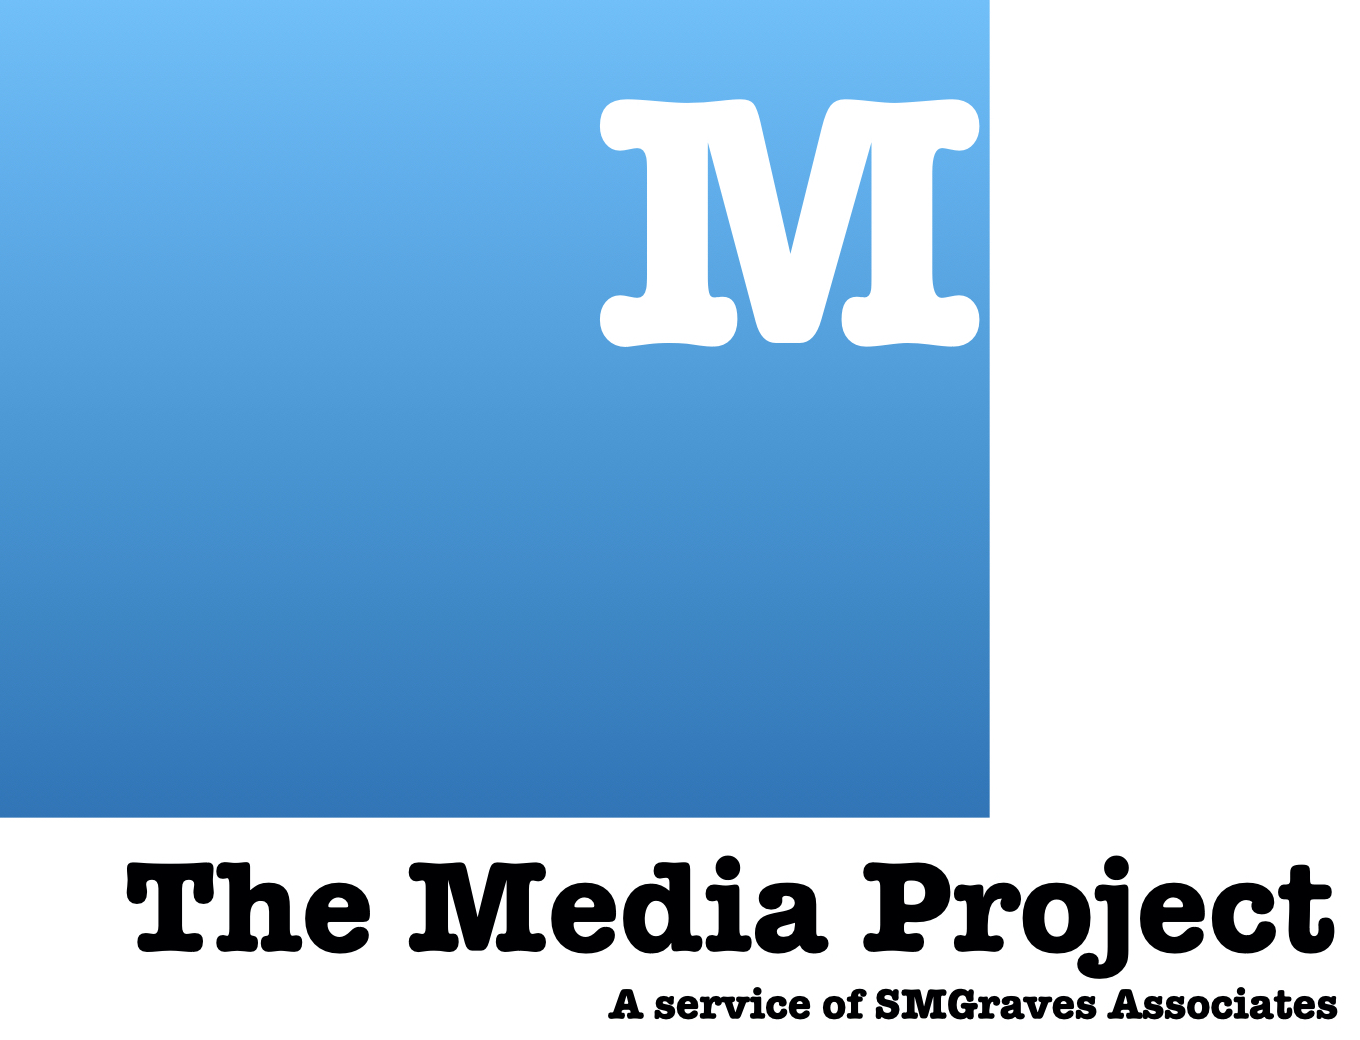 The Media Project Logo in Blue